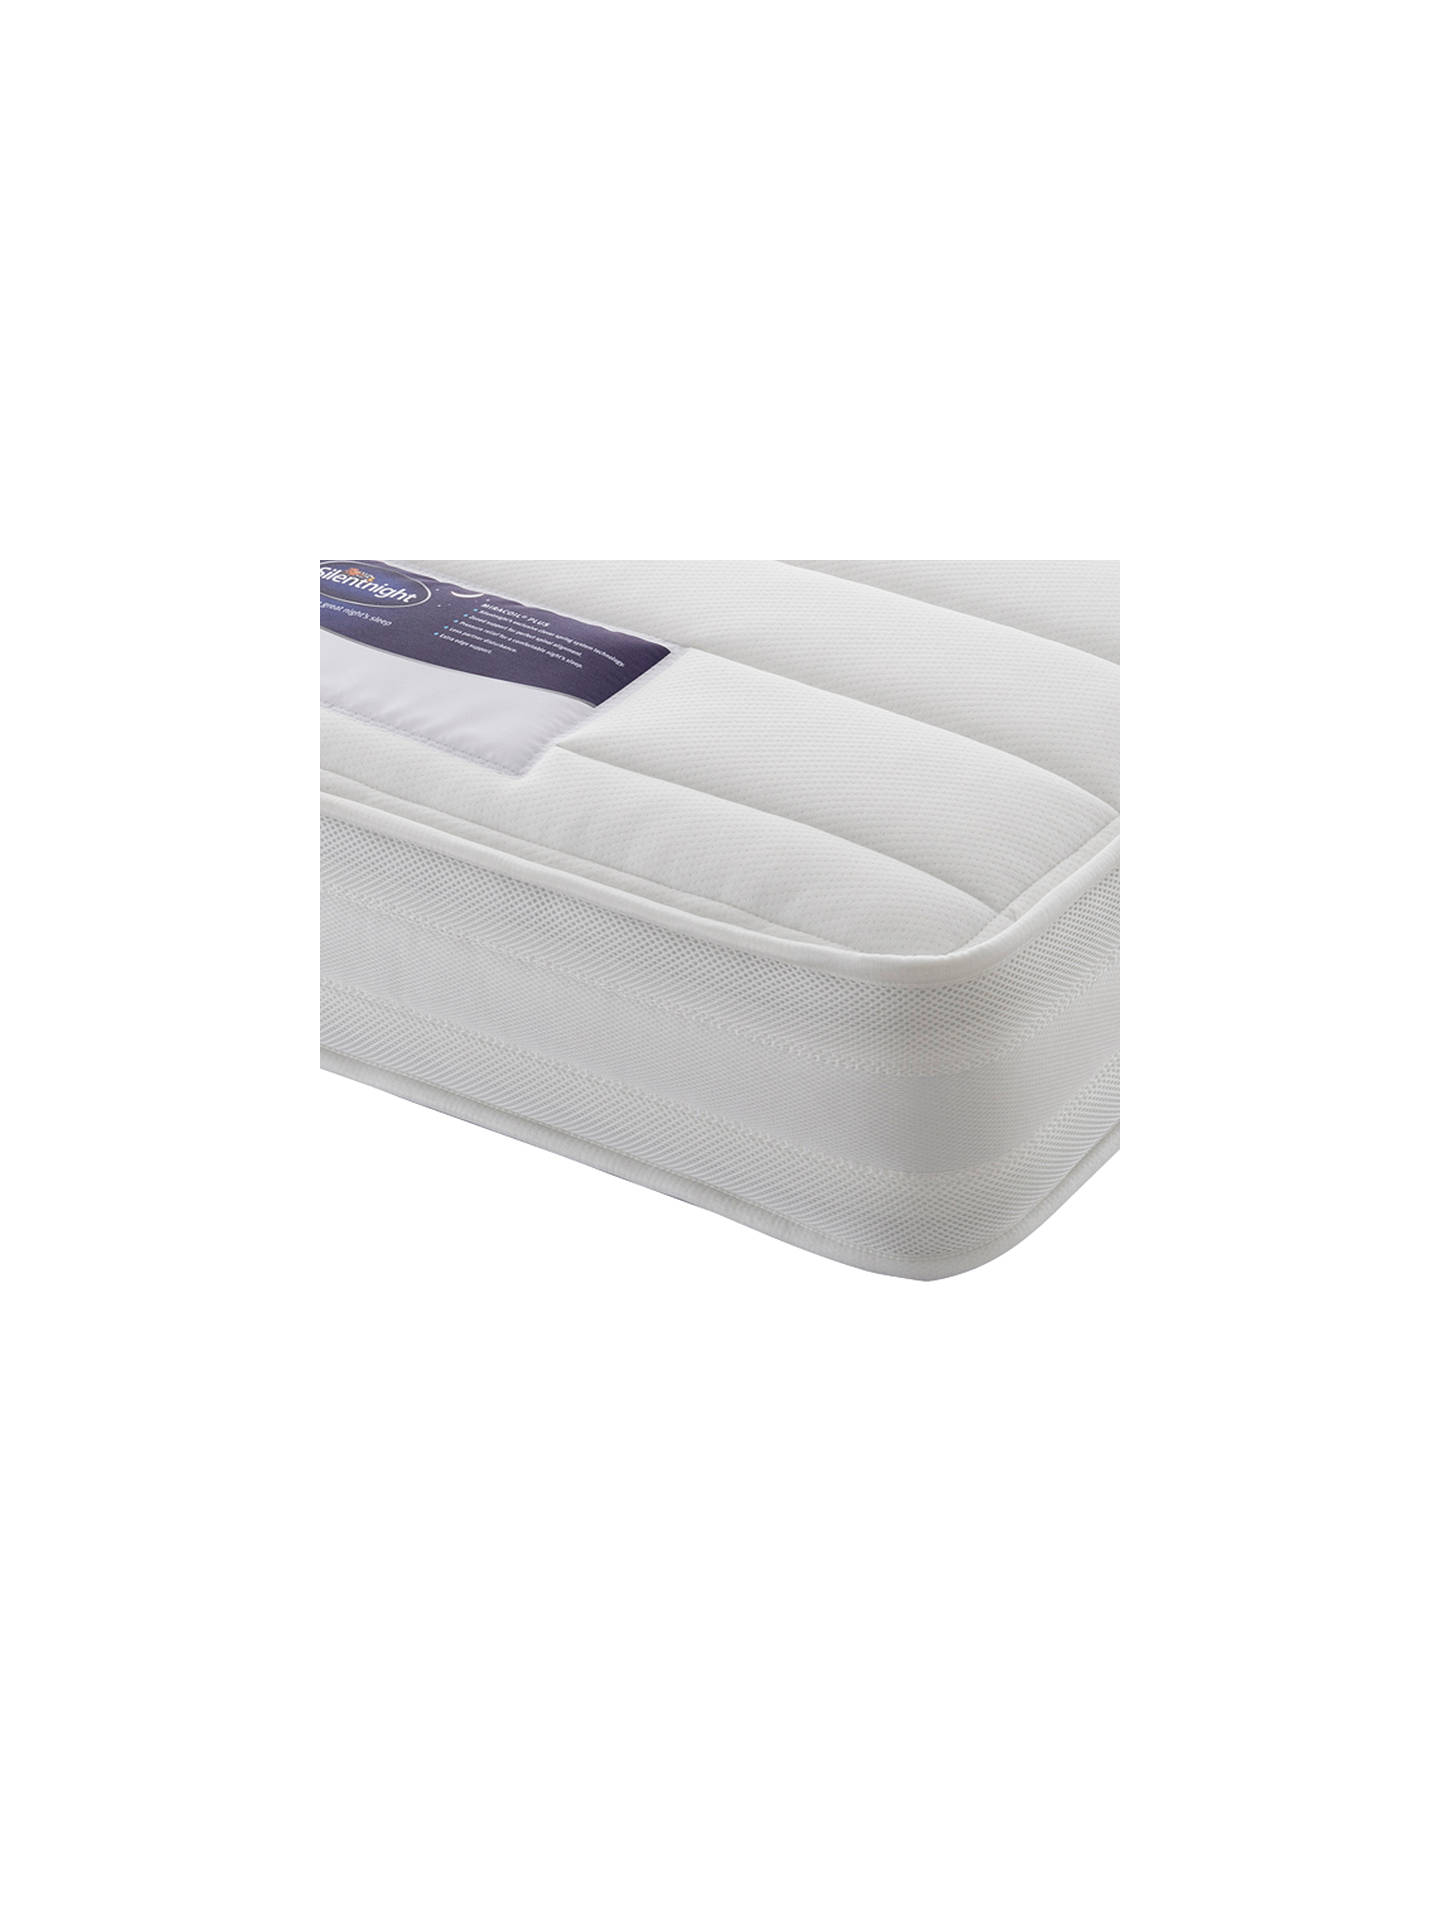 Buy Silentnight Healthy Growth Miracoil Mattress, Firm, Single Online at johnlewis.com